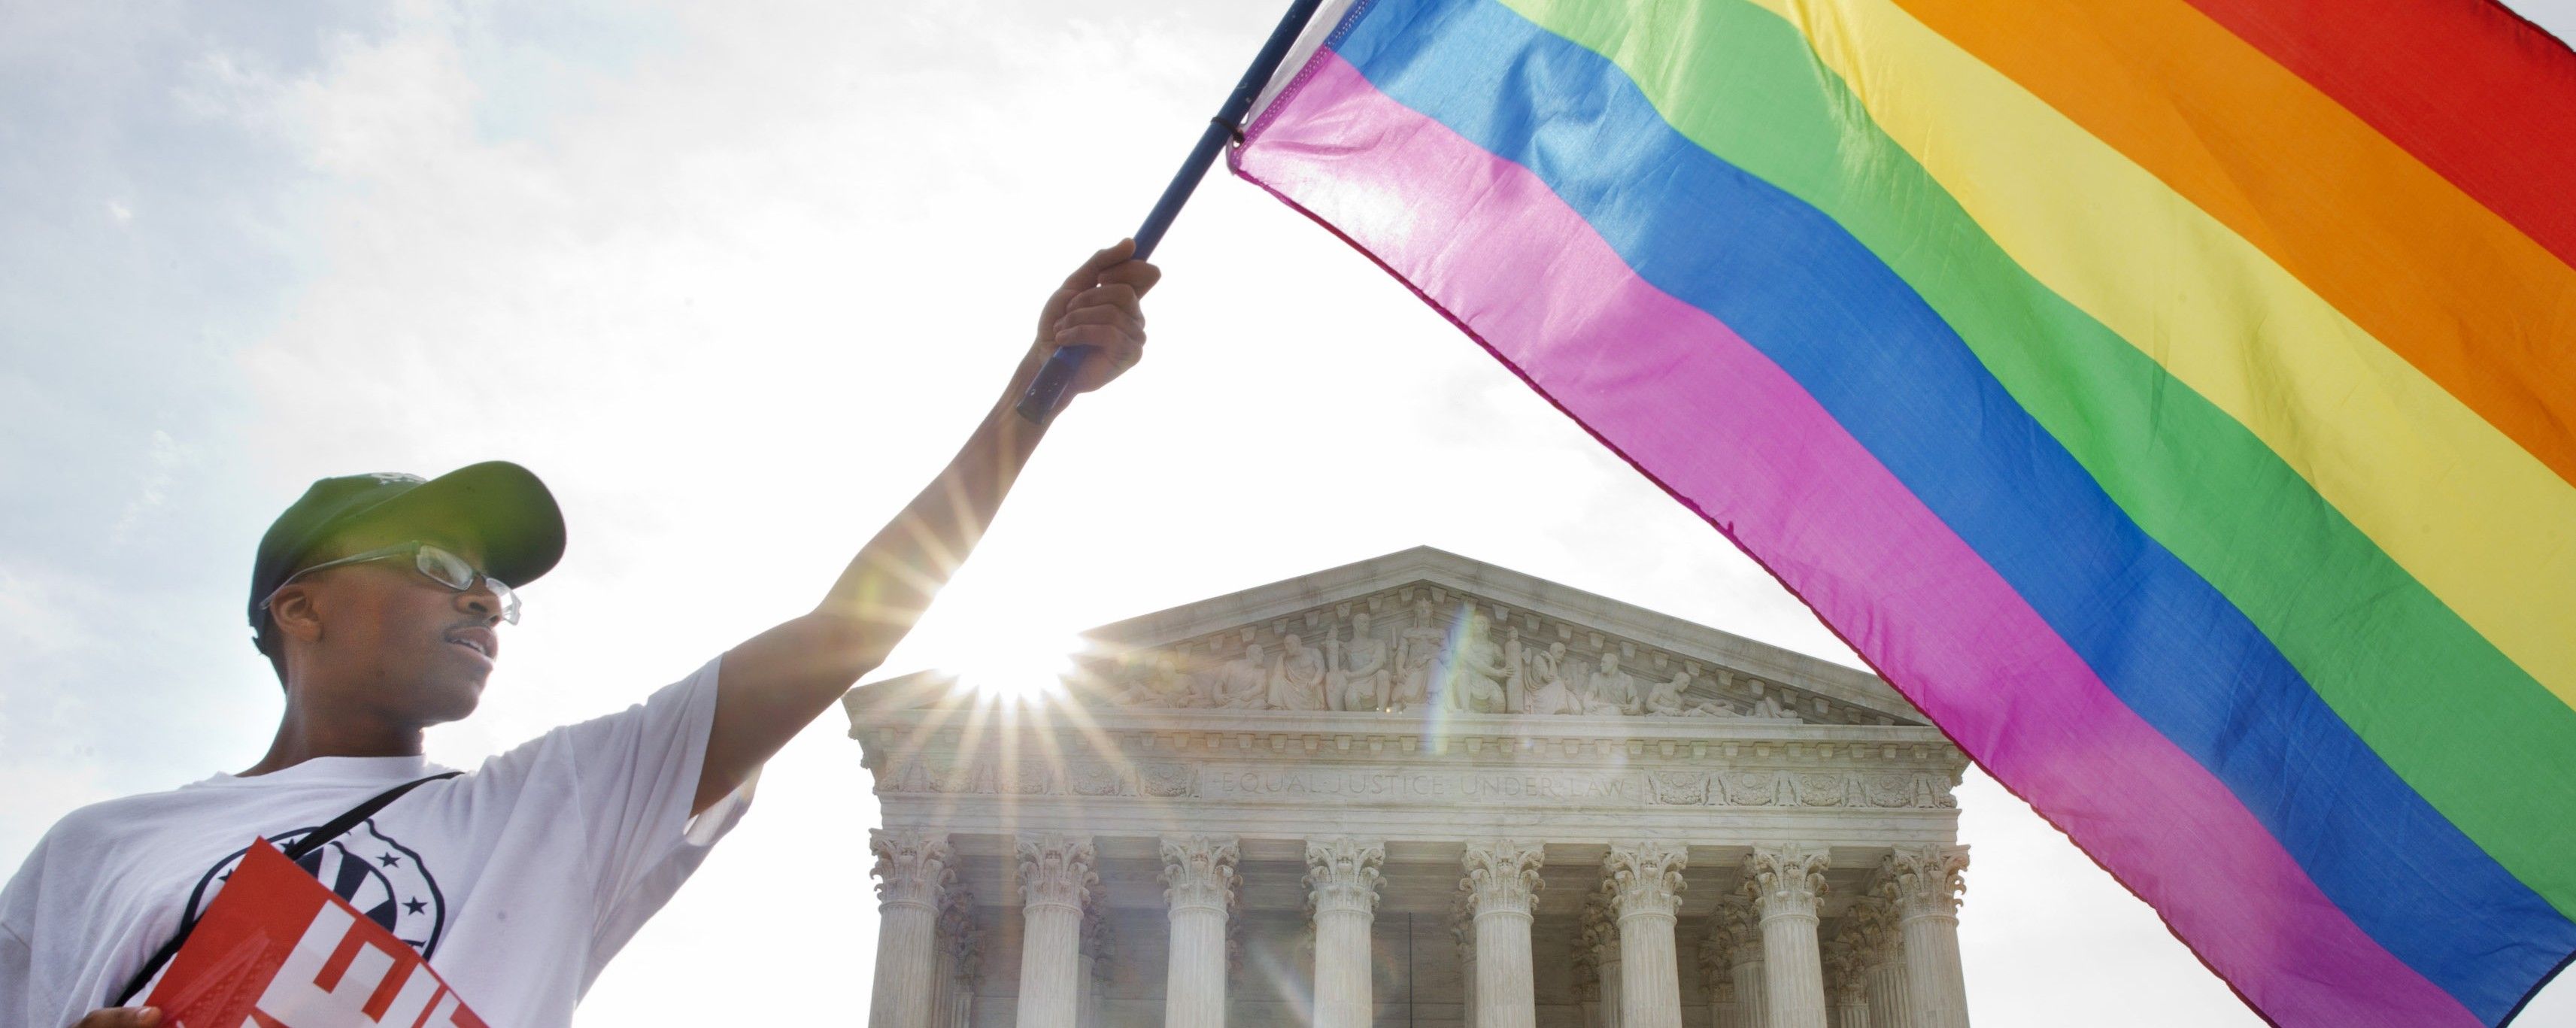 US Supreme Court Ruling Legalizes Same-Sex Marriage Nationwide